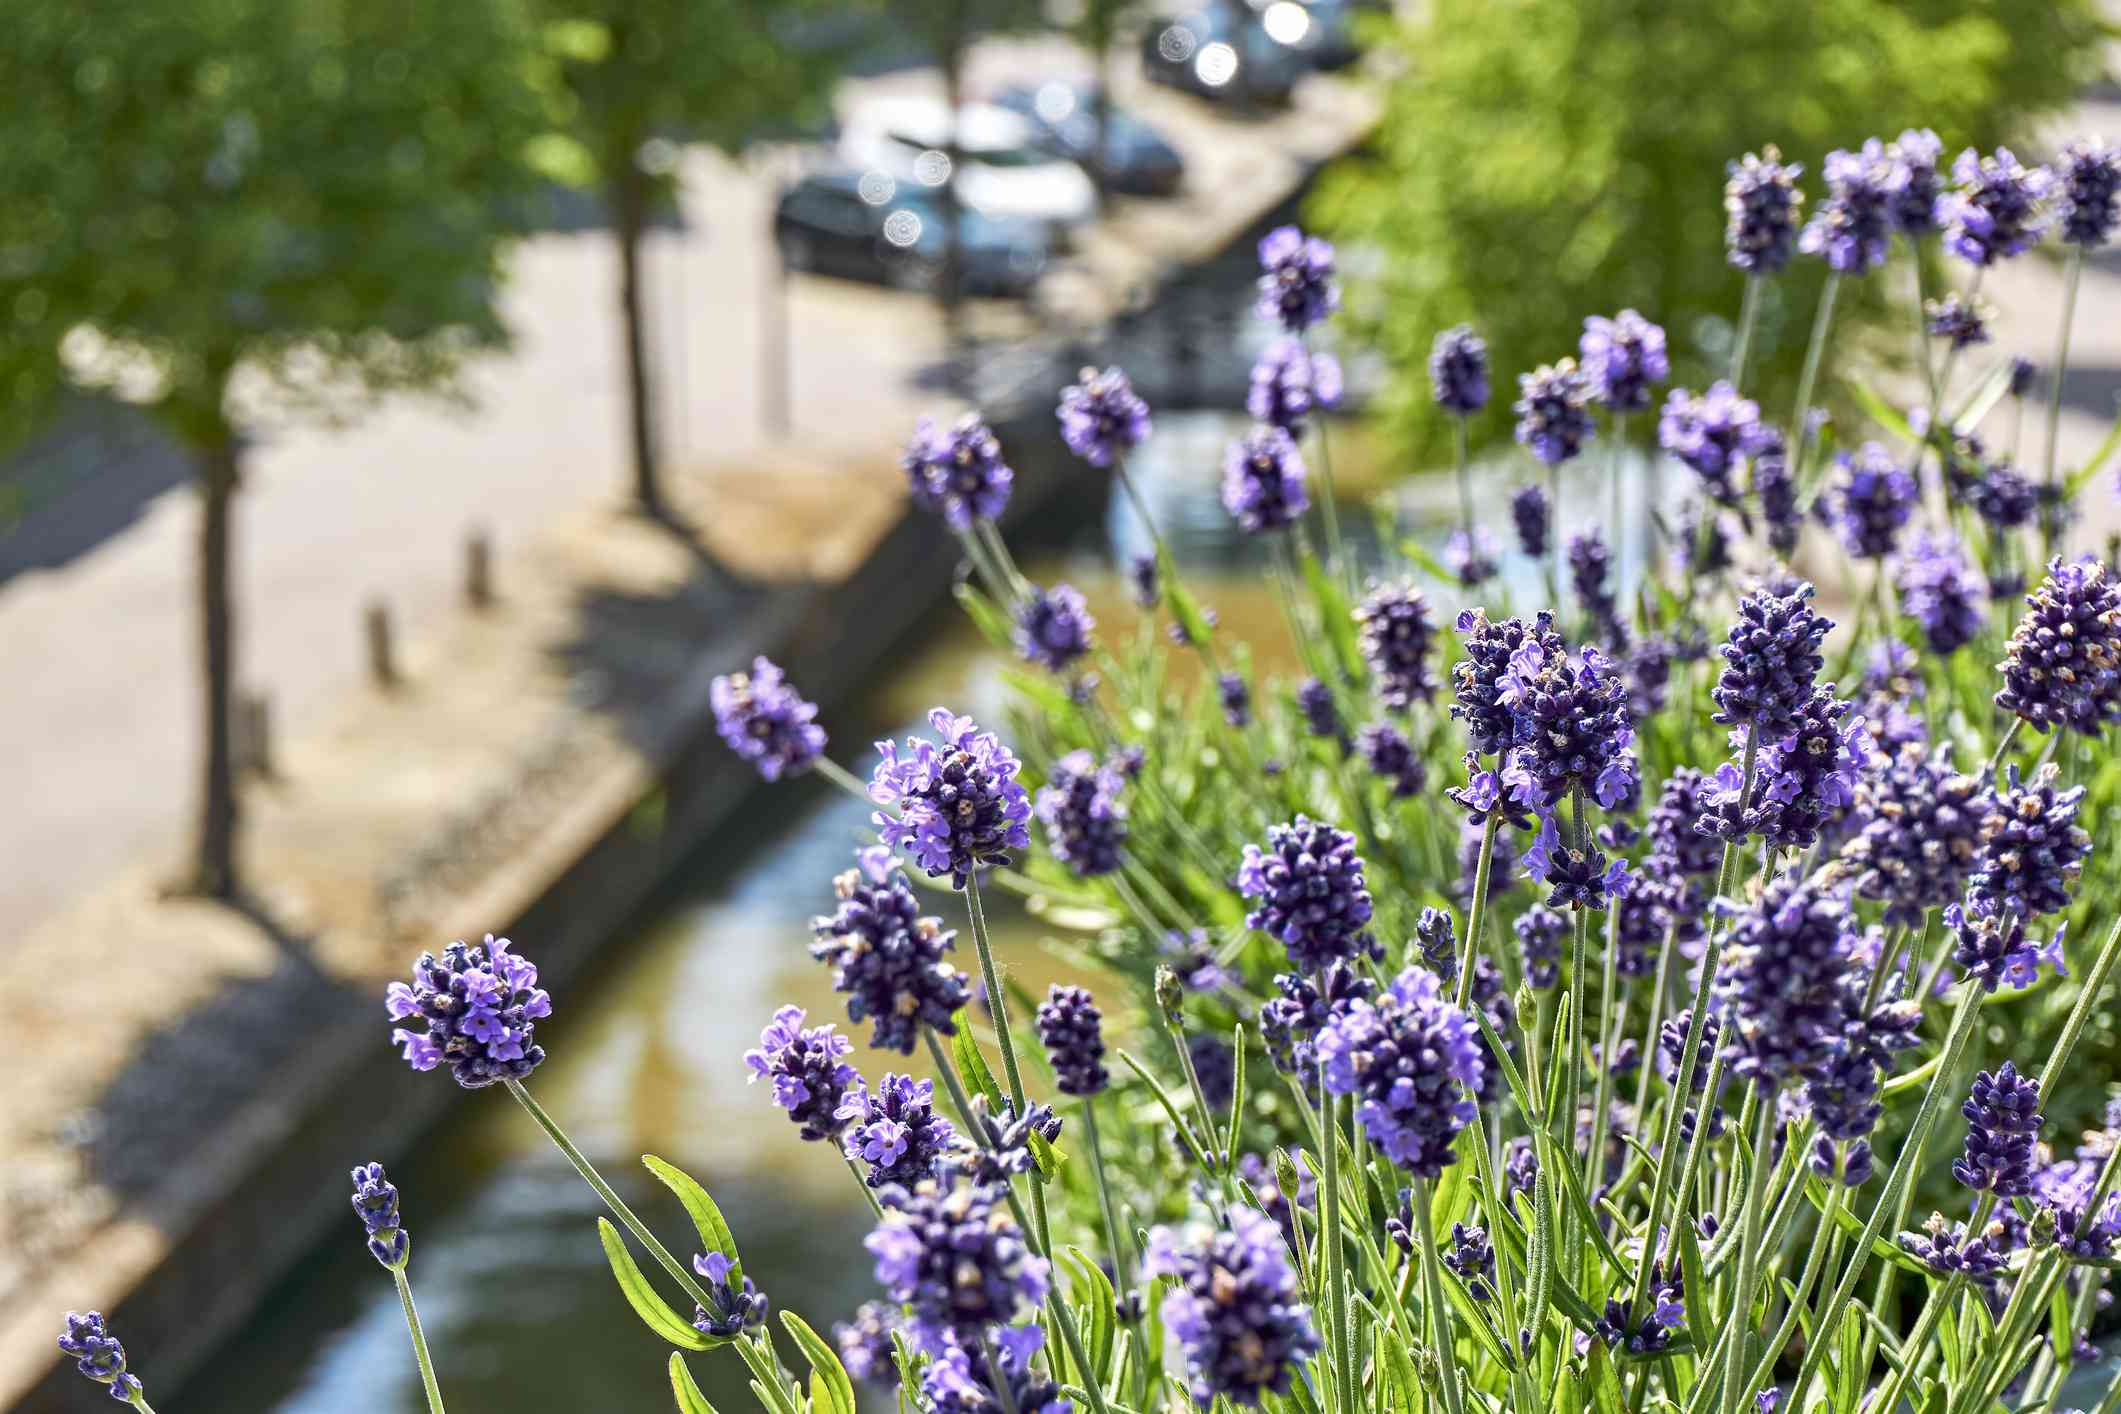 Blooming lavender on a balcony in The Netherlands